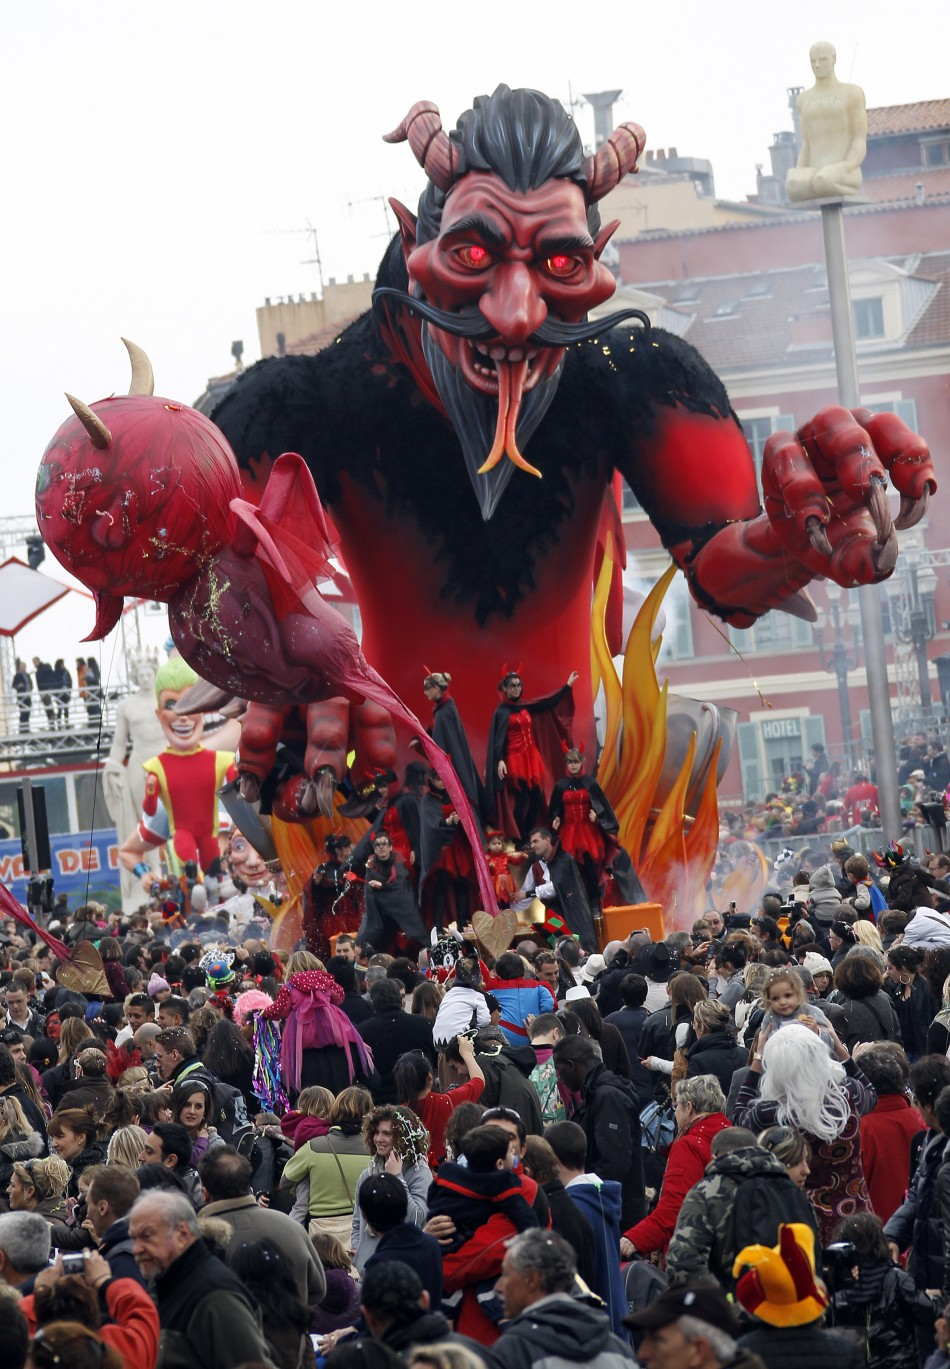 A float with a giant figure representing a devil is paraded during the Nice Carnival